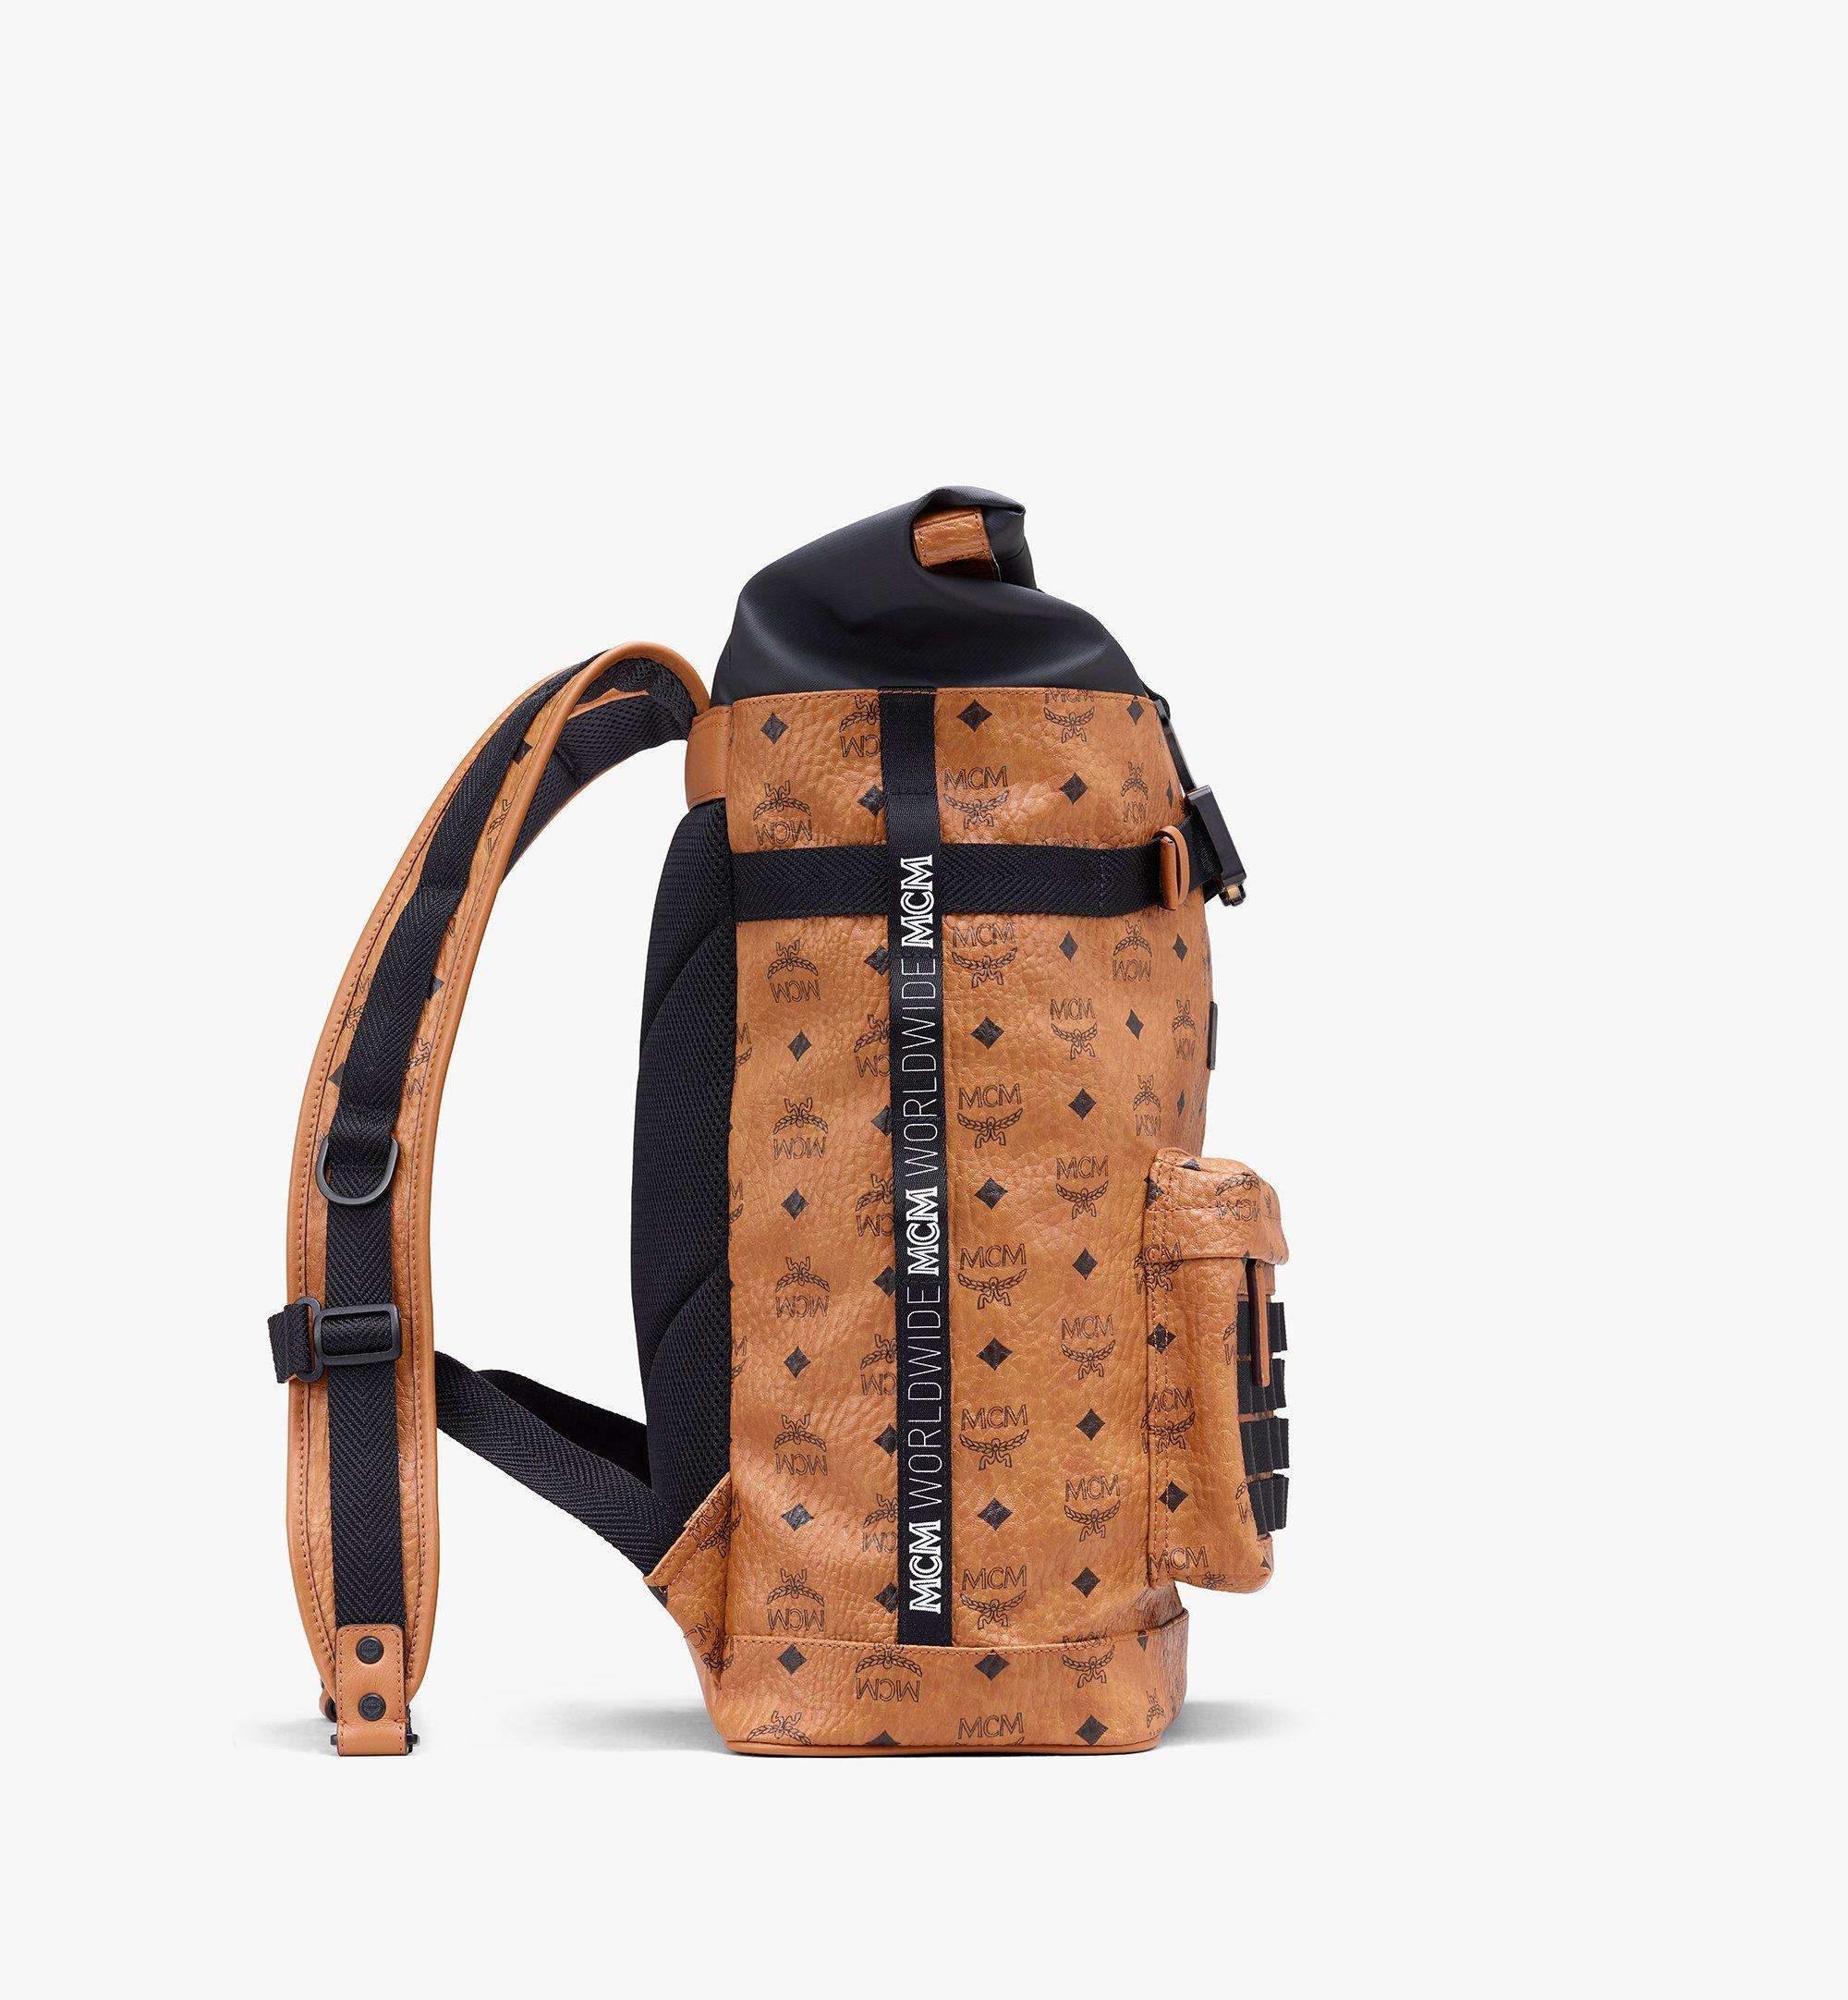 Medium 1976 Rolltop Rucksack in Visetos Cognac | MCM® DE